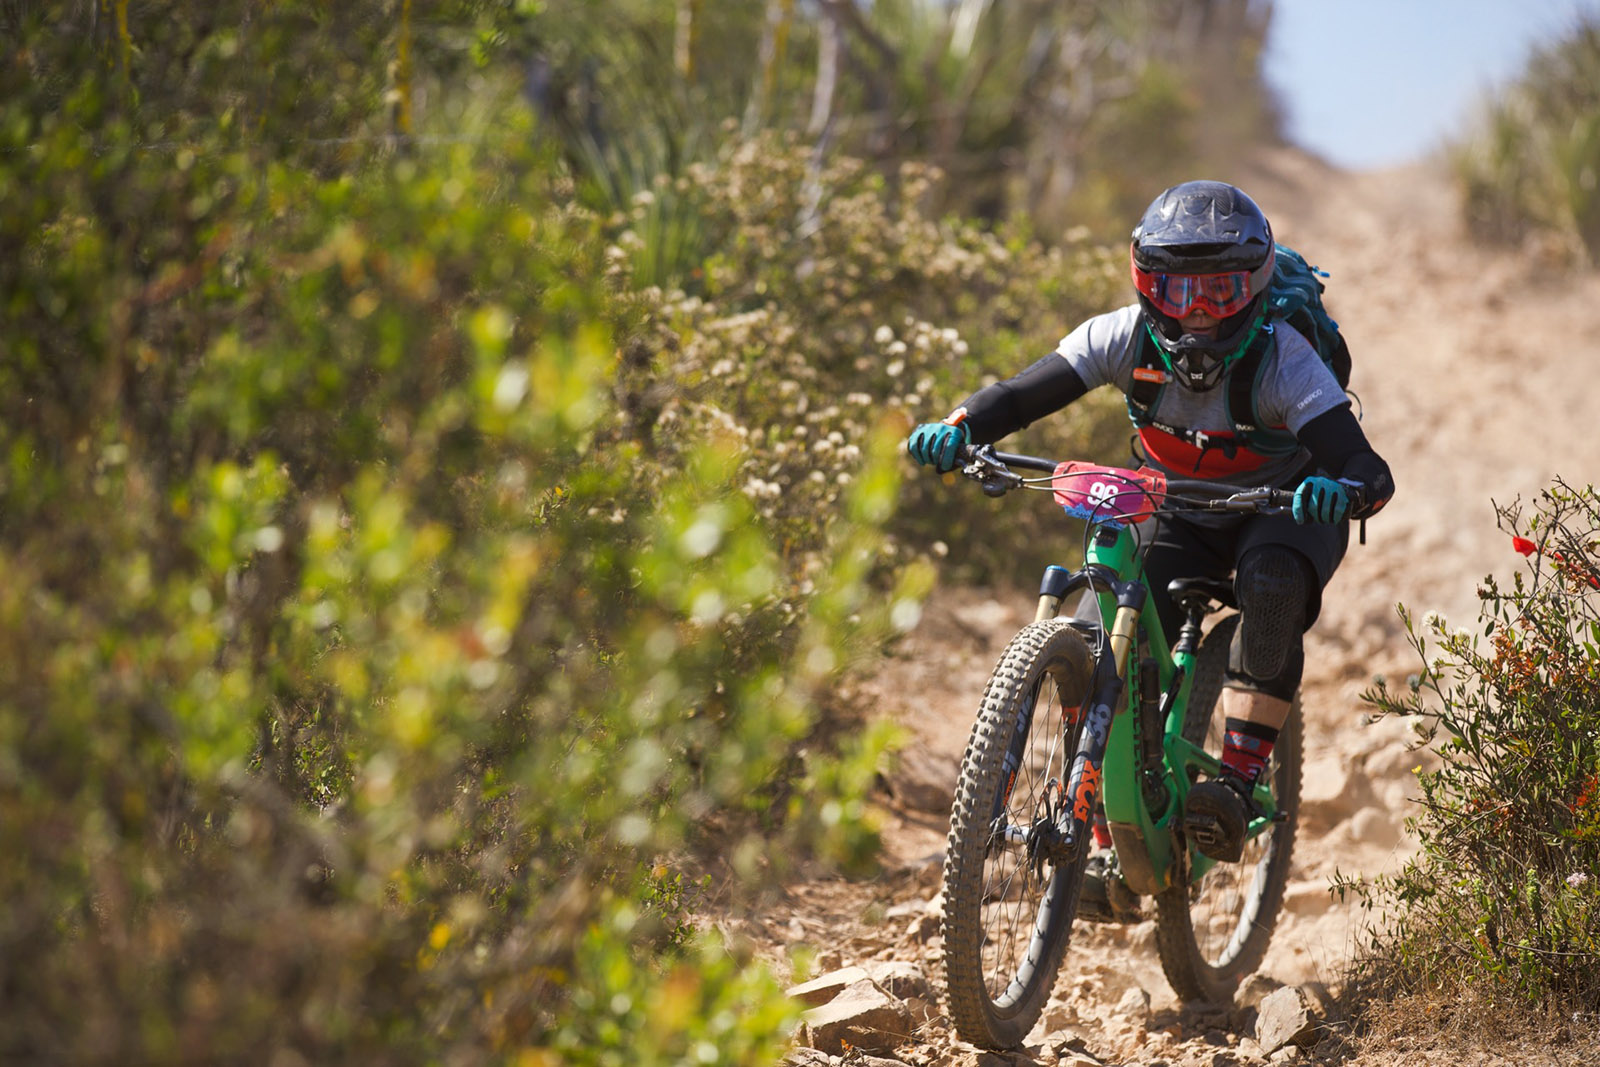 Juliana Bicycles - Plate 96, Jaime Hill at Andes Pacifico Enduro 2018